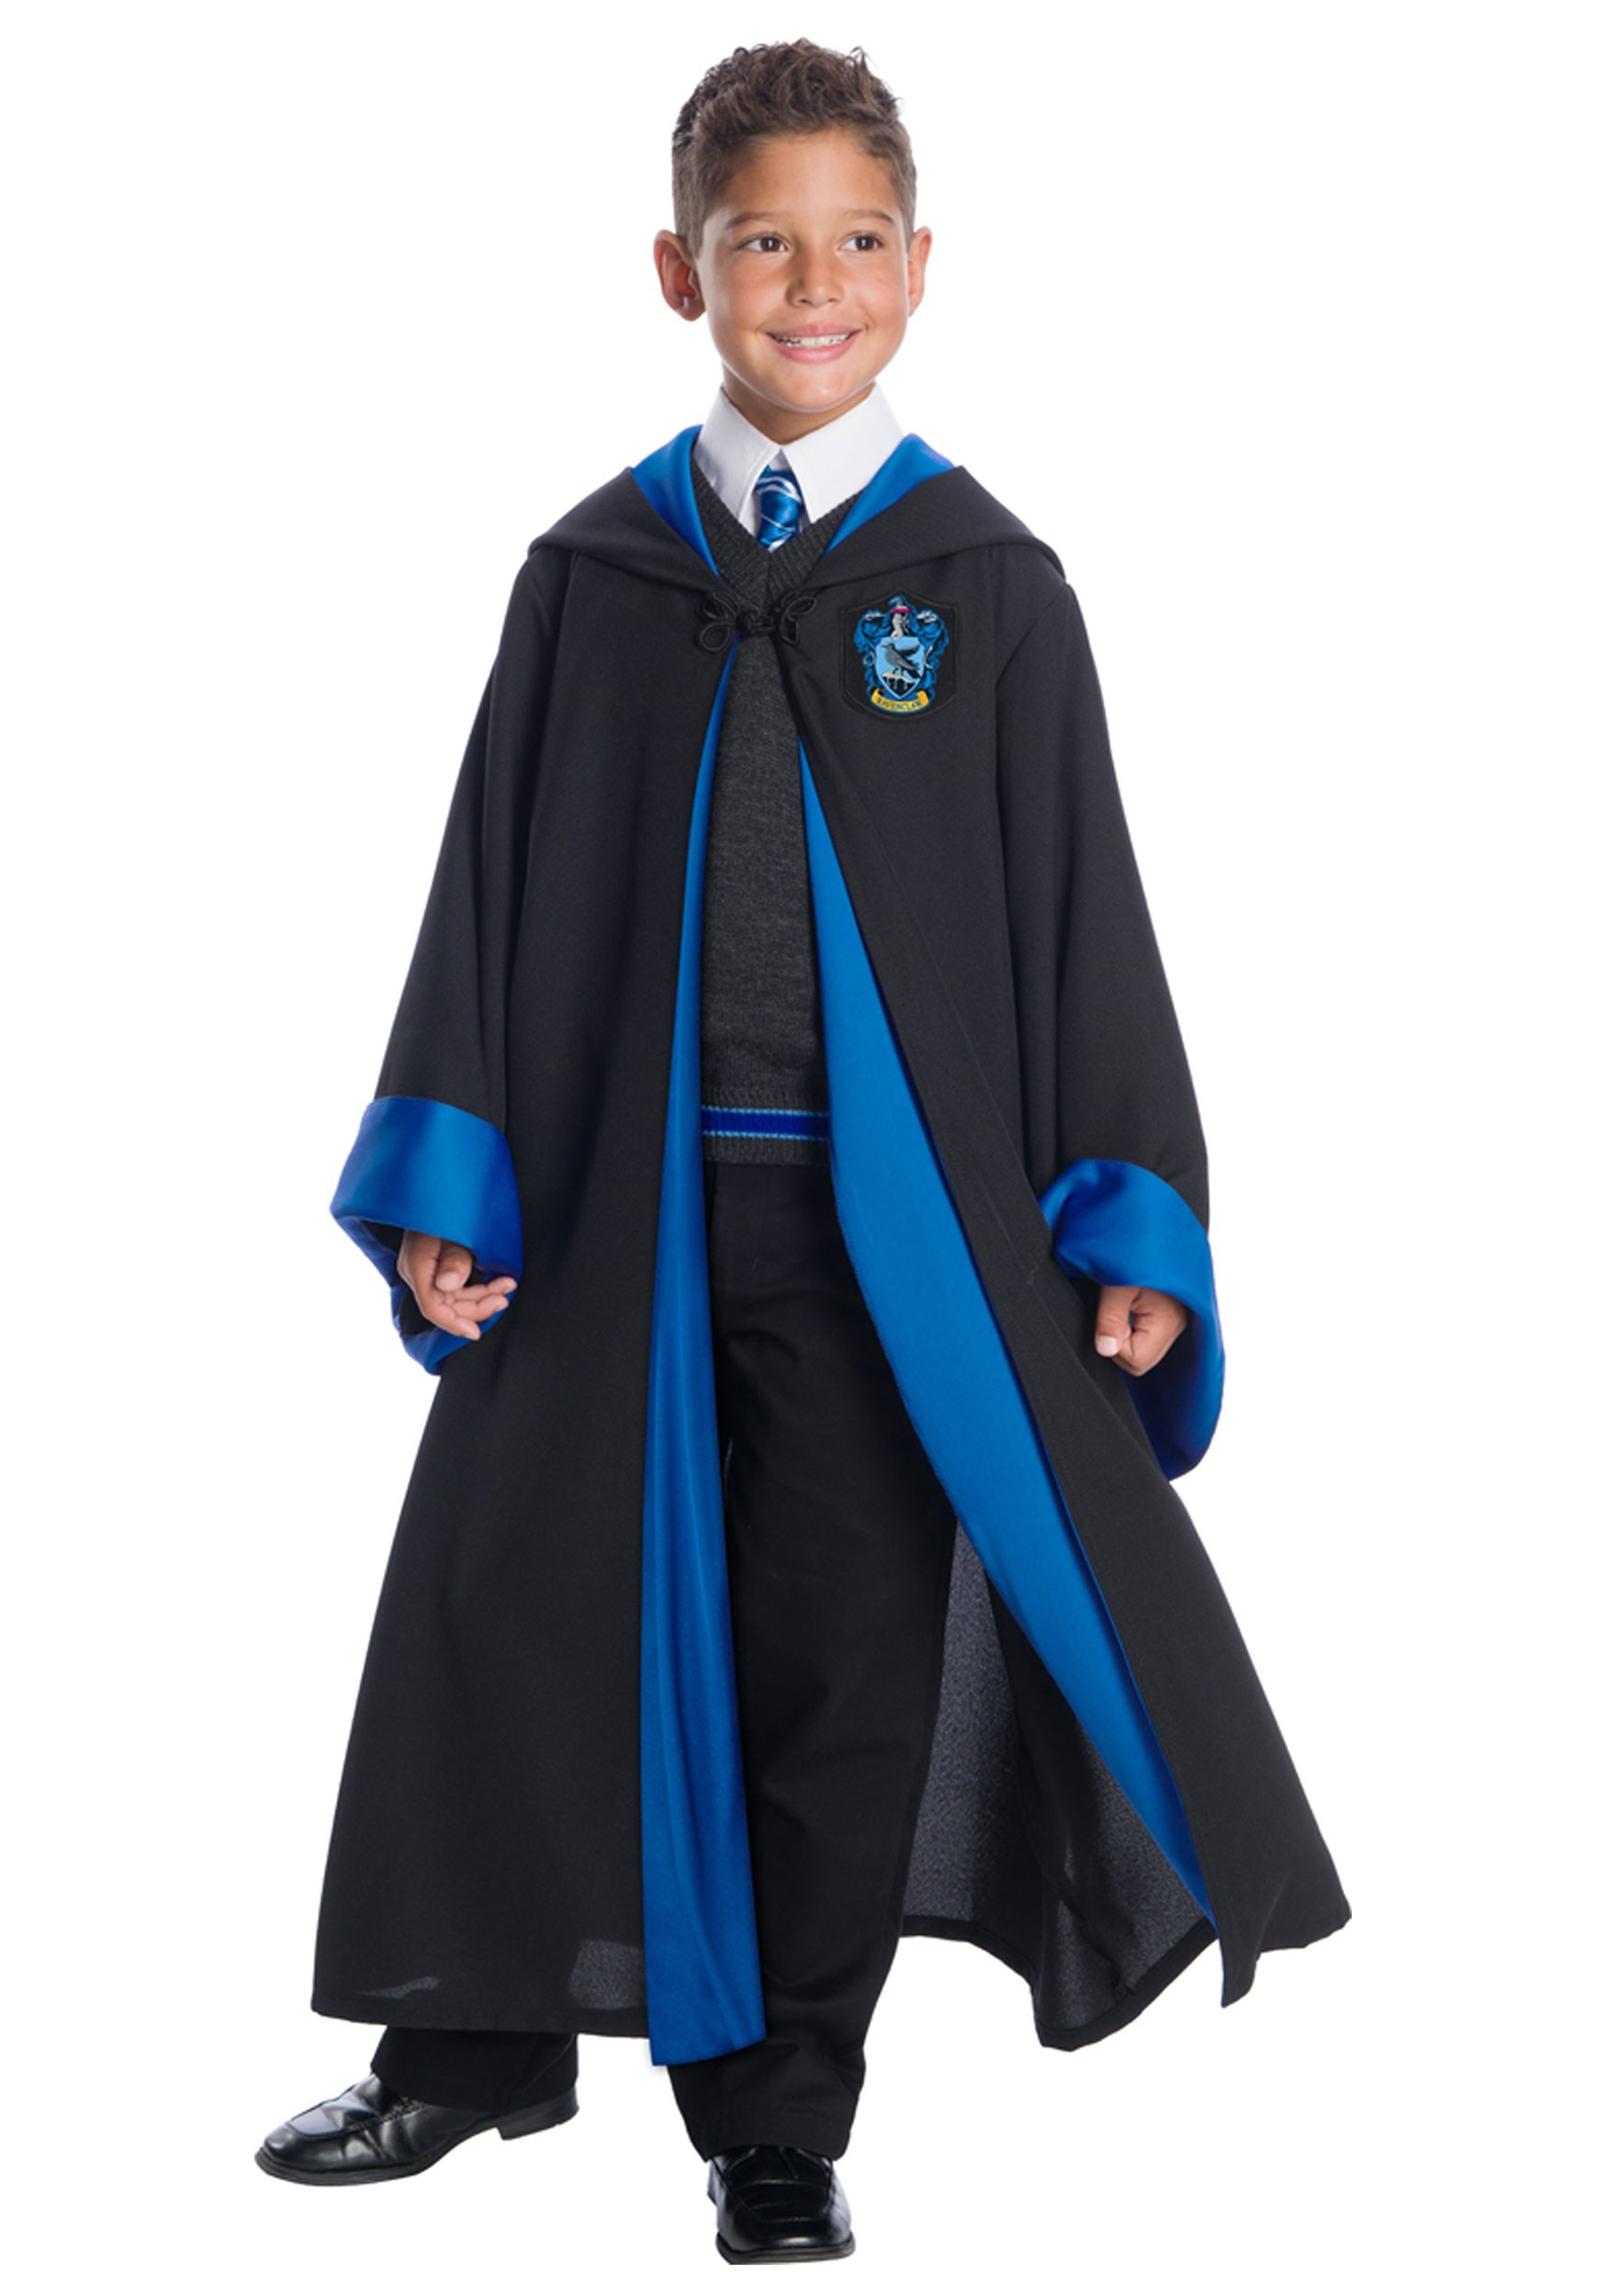 Deluxe Ravenclaw Student Costume for Kids